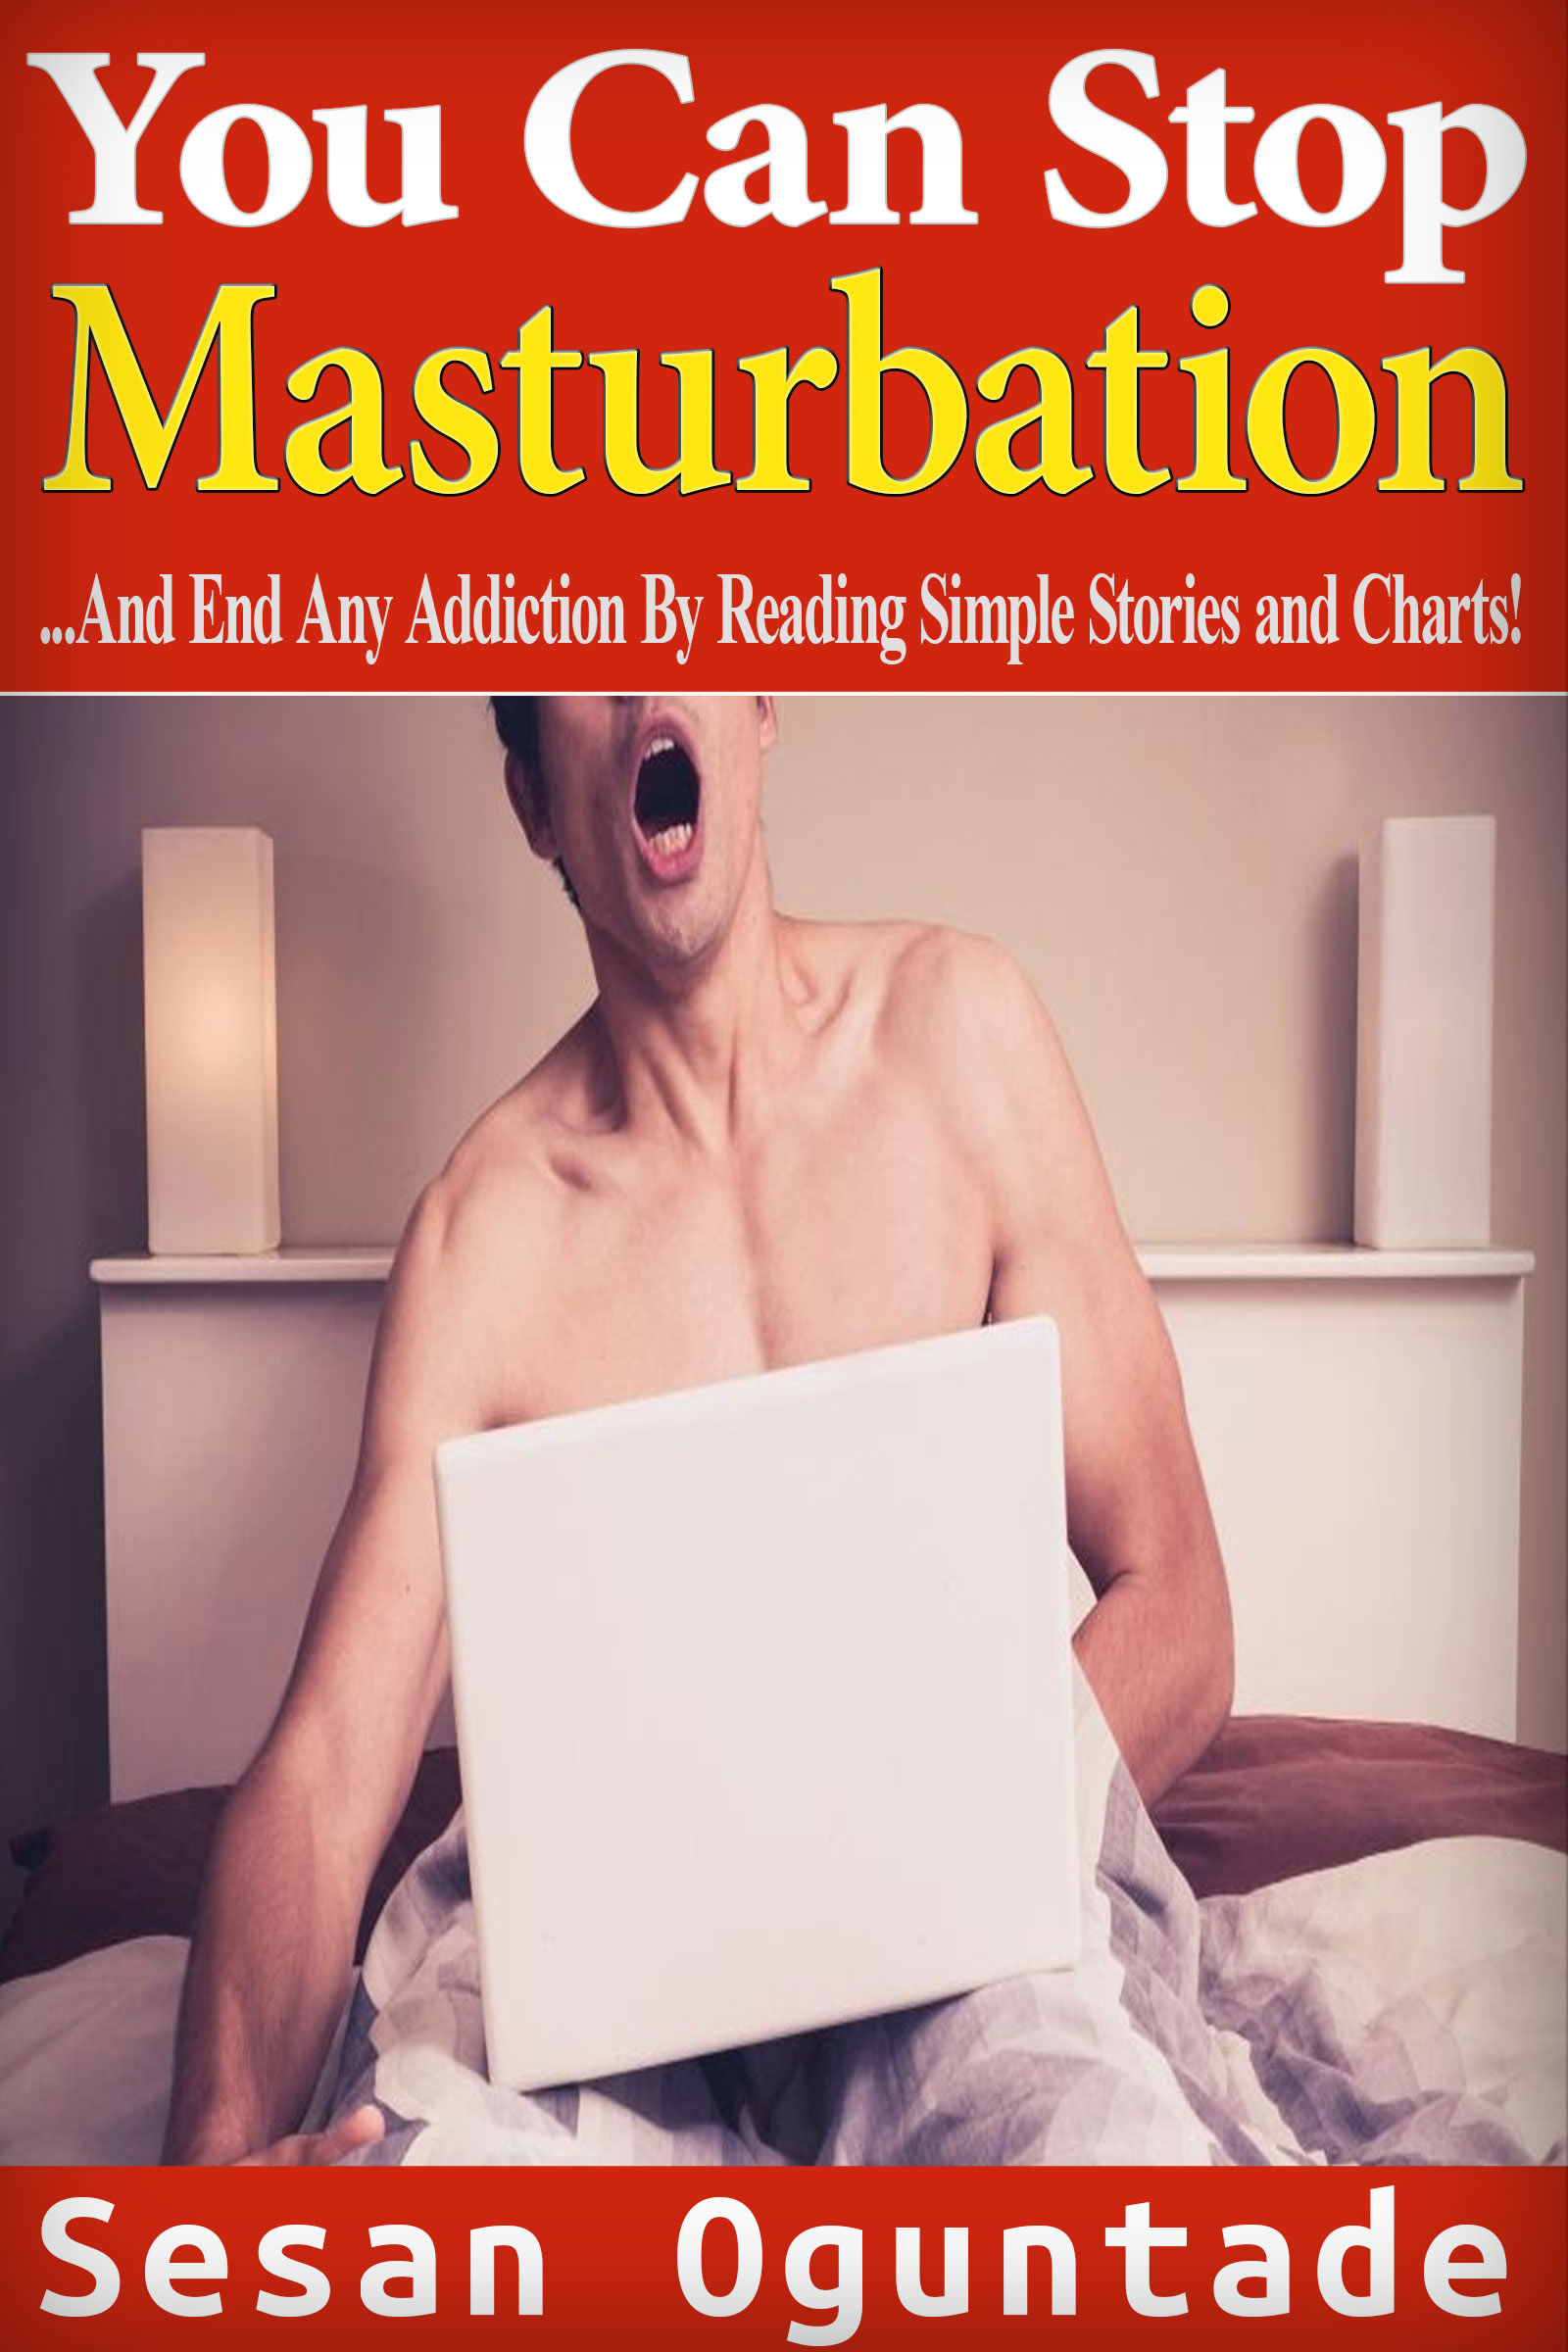 Masturbation stops feeling good